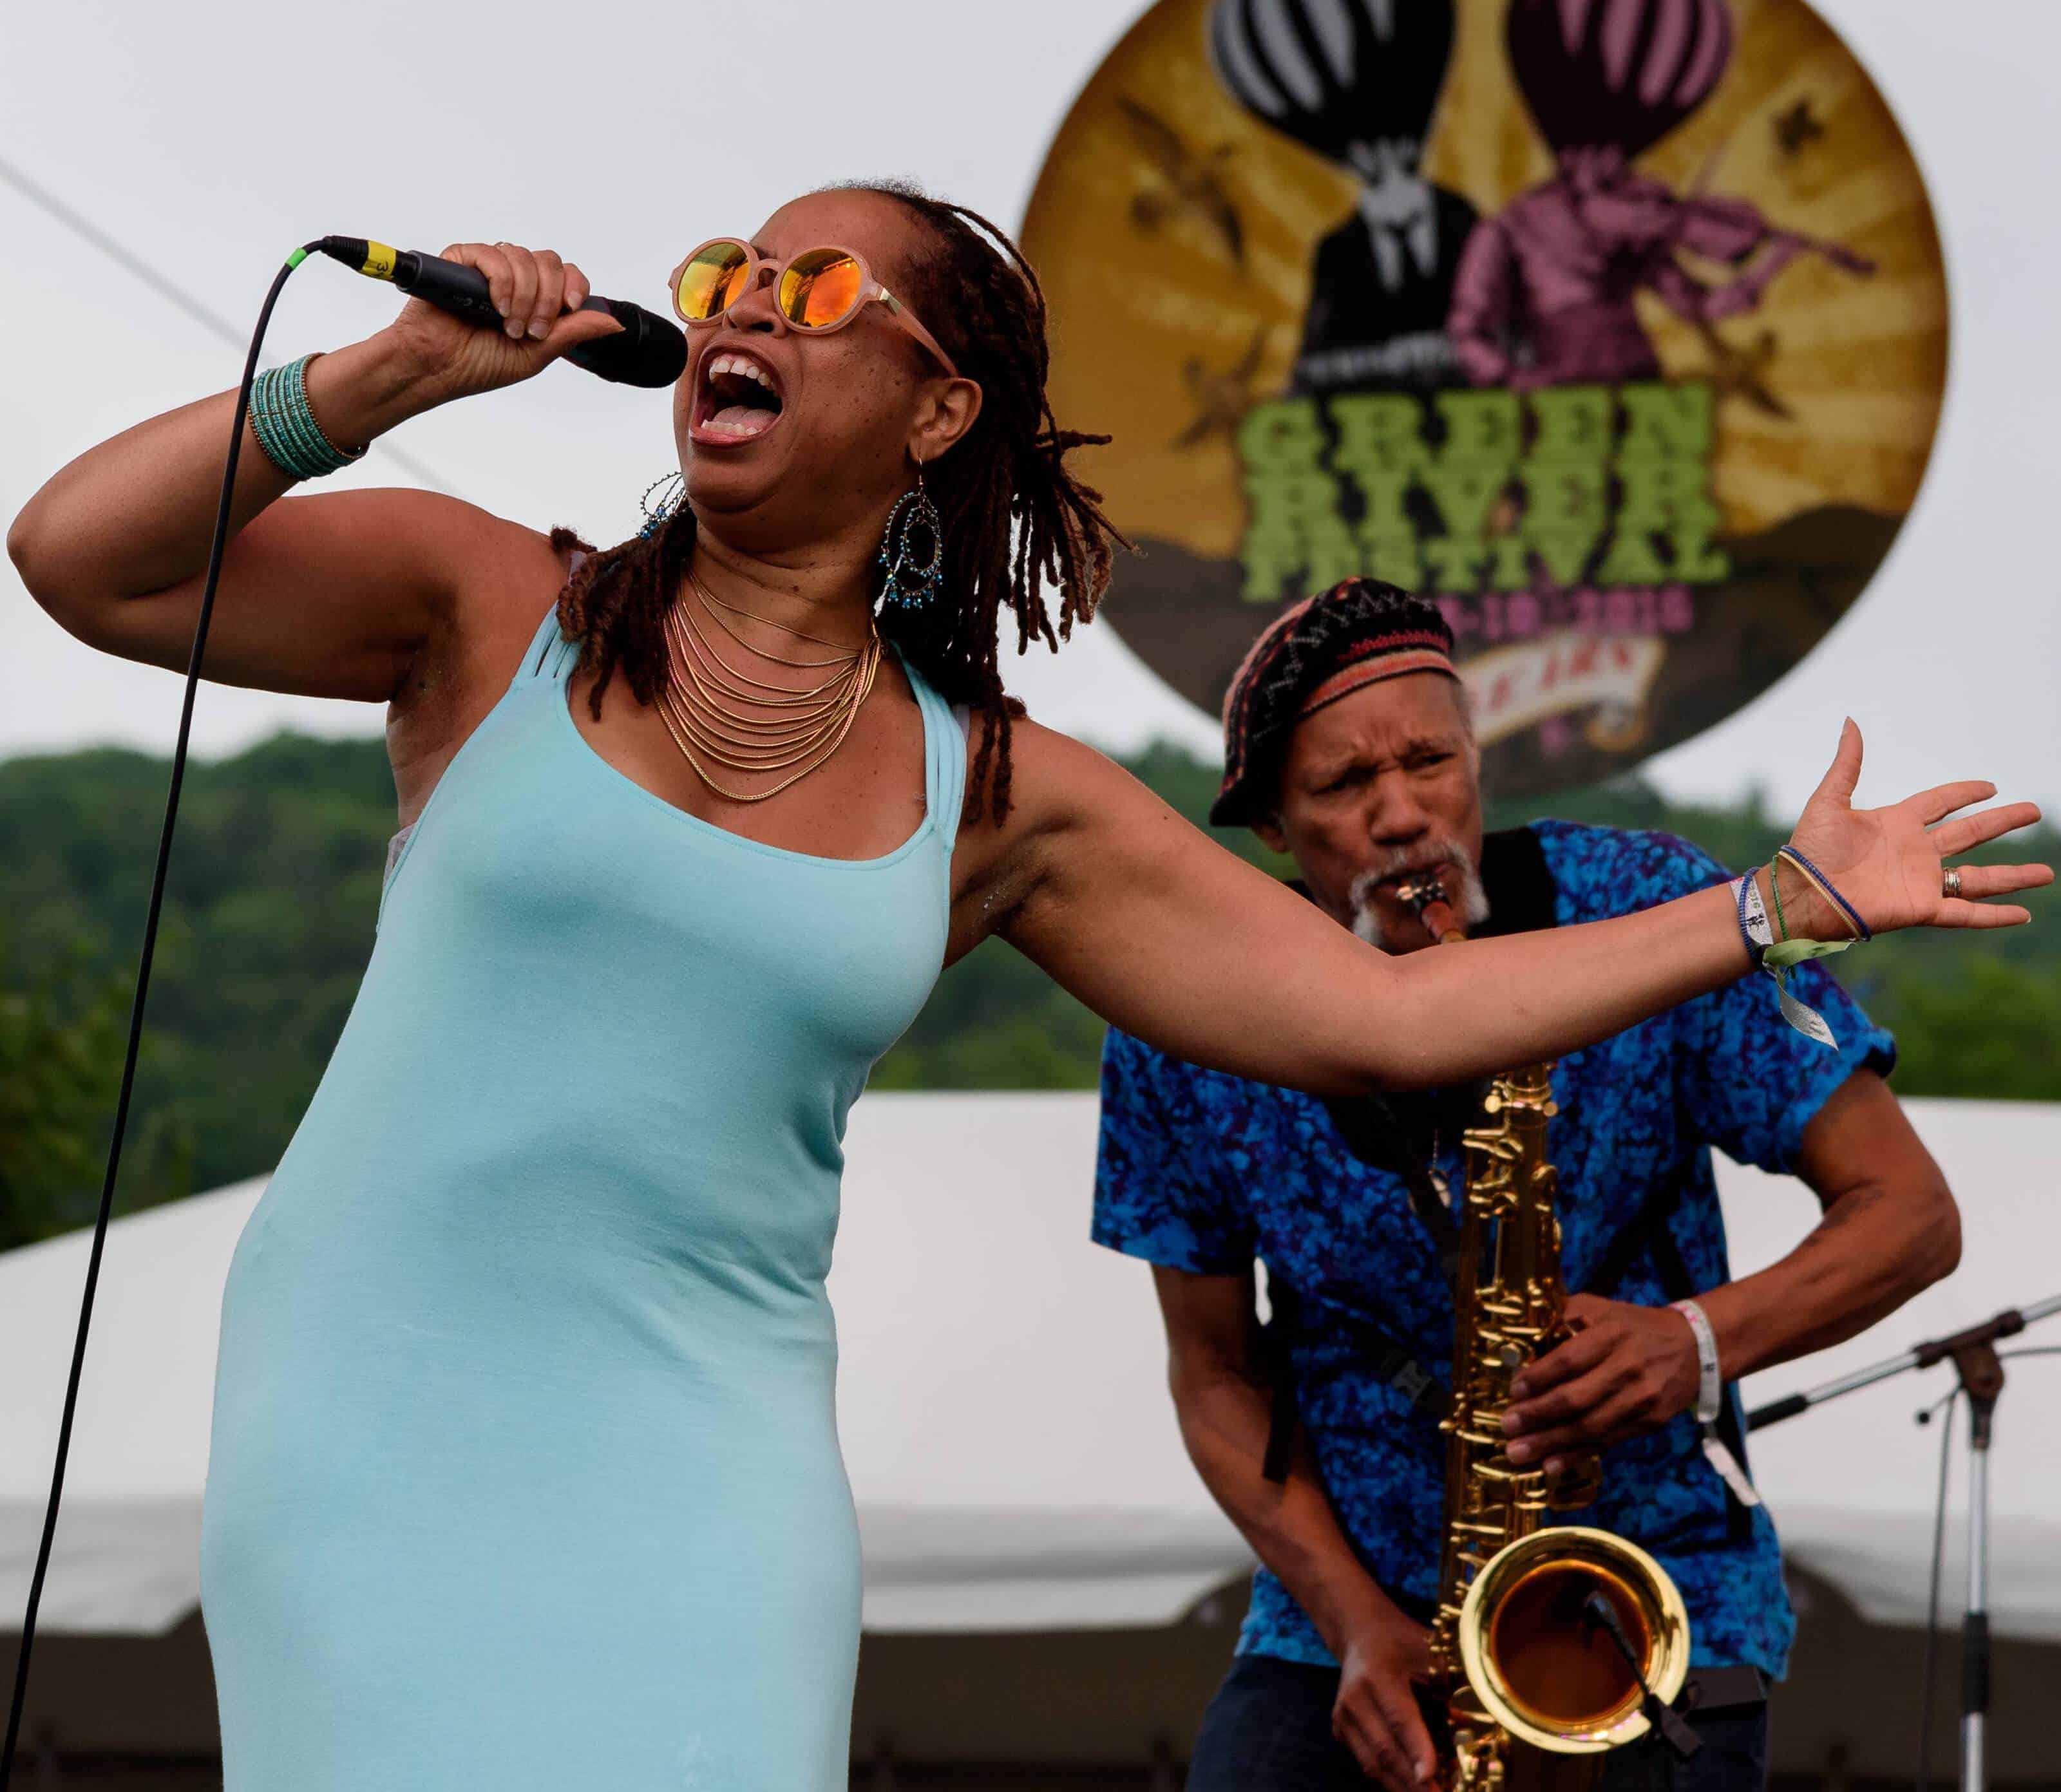 New Orleans jazz and blues artist Samirah Evans will join saxophonist Charles Neville at Flavours of Malaysia on Oct. 13. Photo courtesy of Pittsfield CityJazz